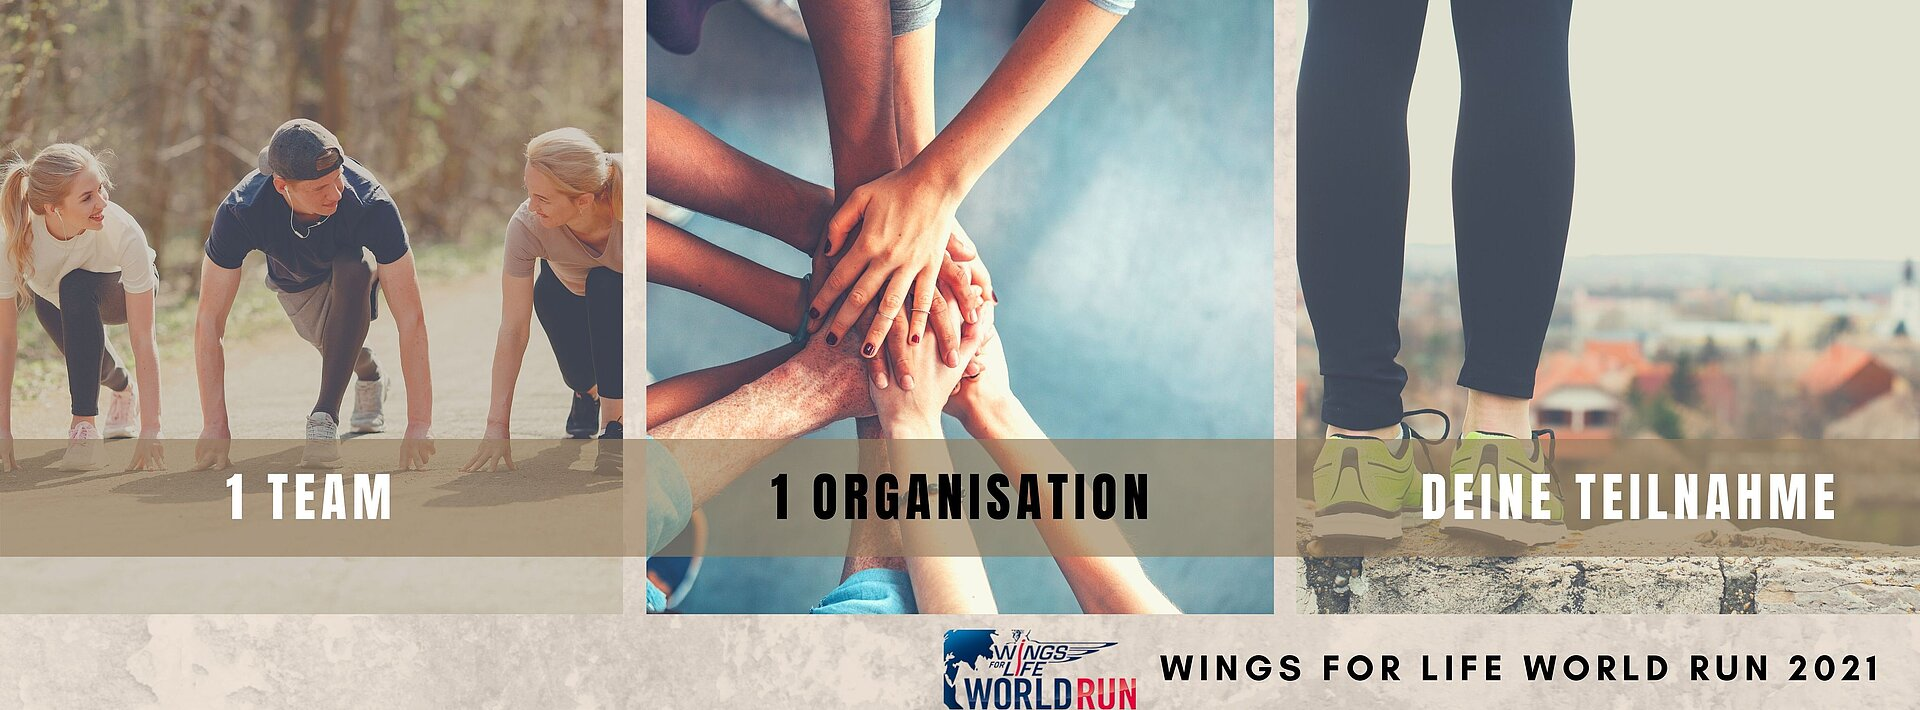 Wings for Life World Run Team - Landjugend Österreich -